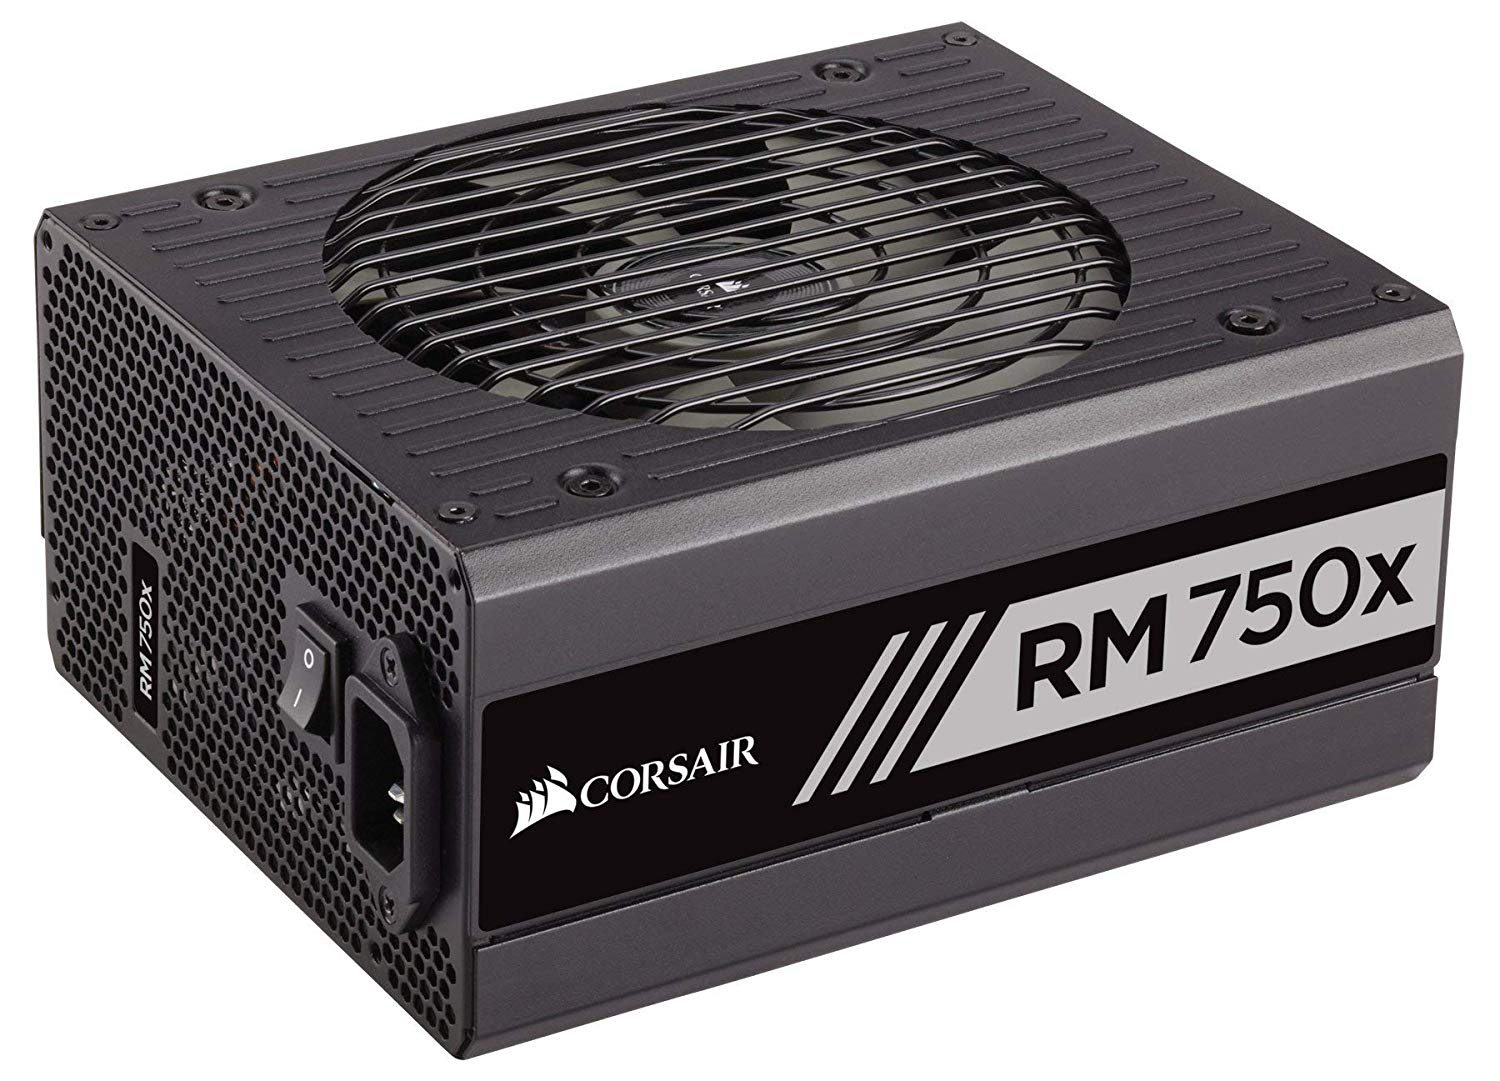 7 Power Supply - CORSAIR RMX Series, RM750x - Best $1500 PC Build 2019